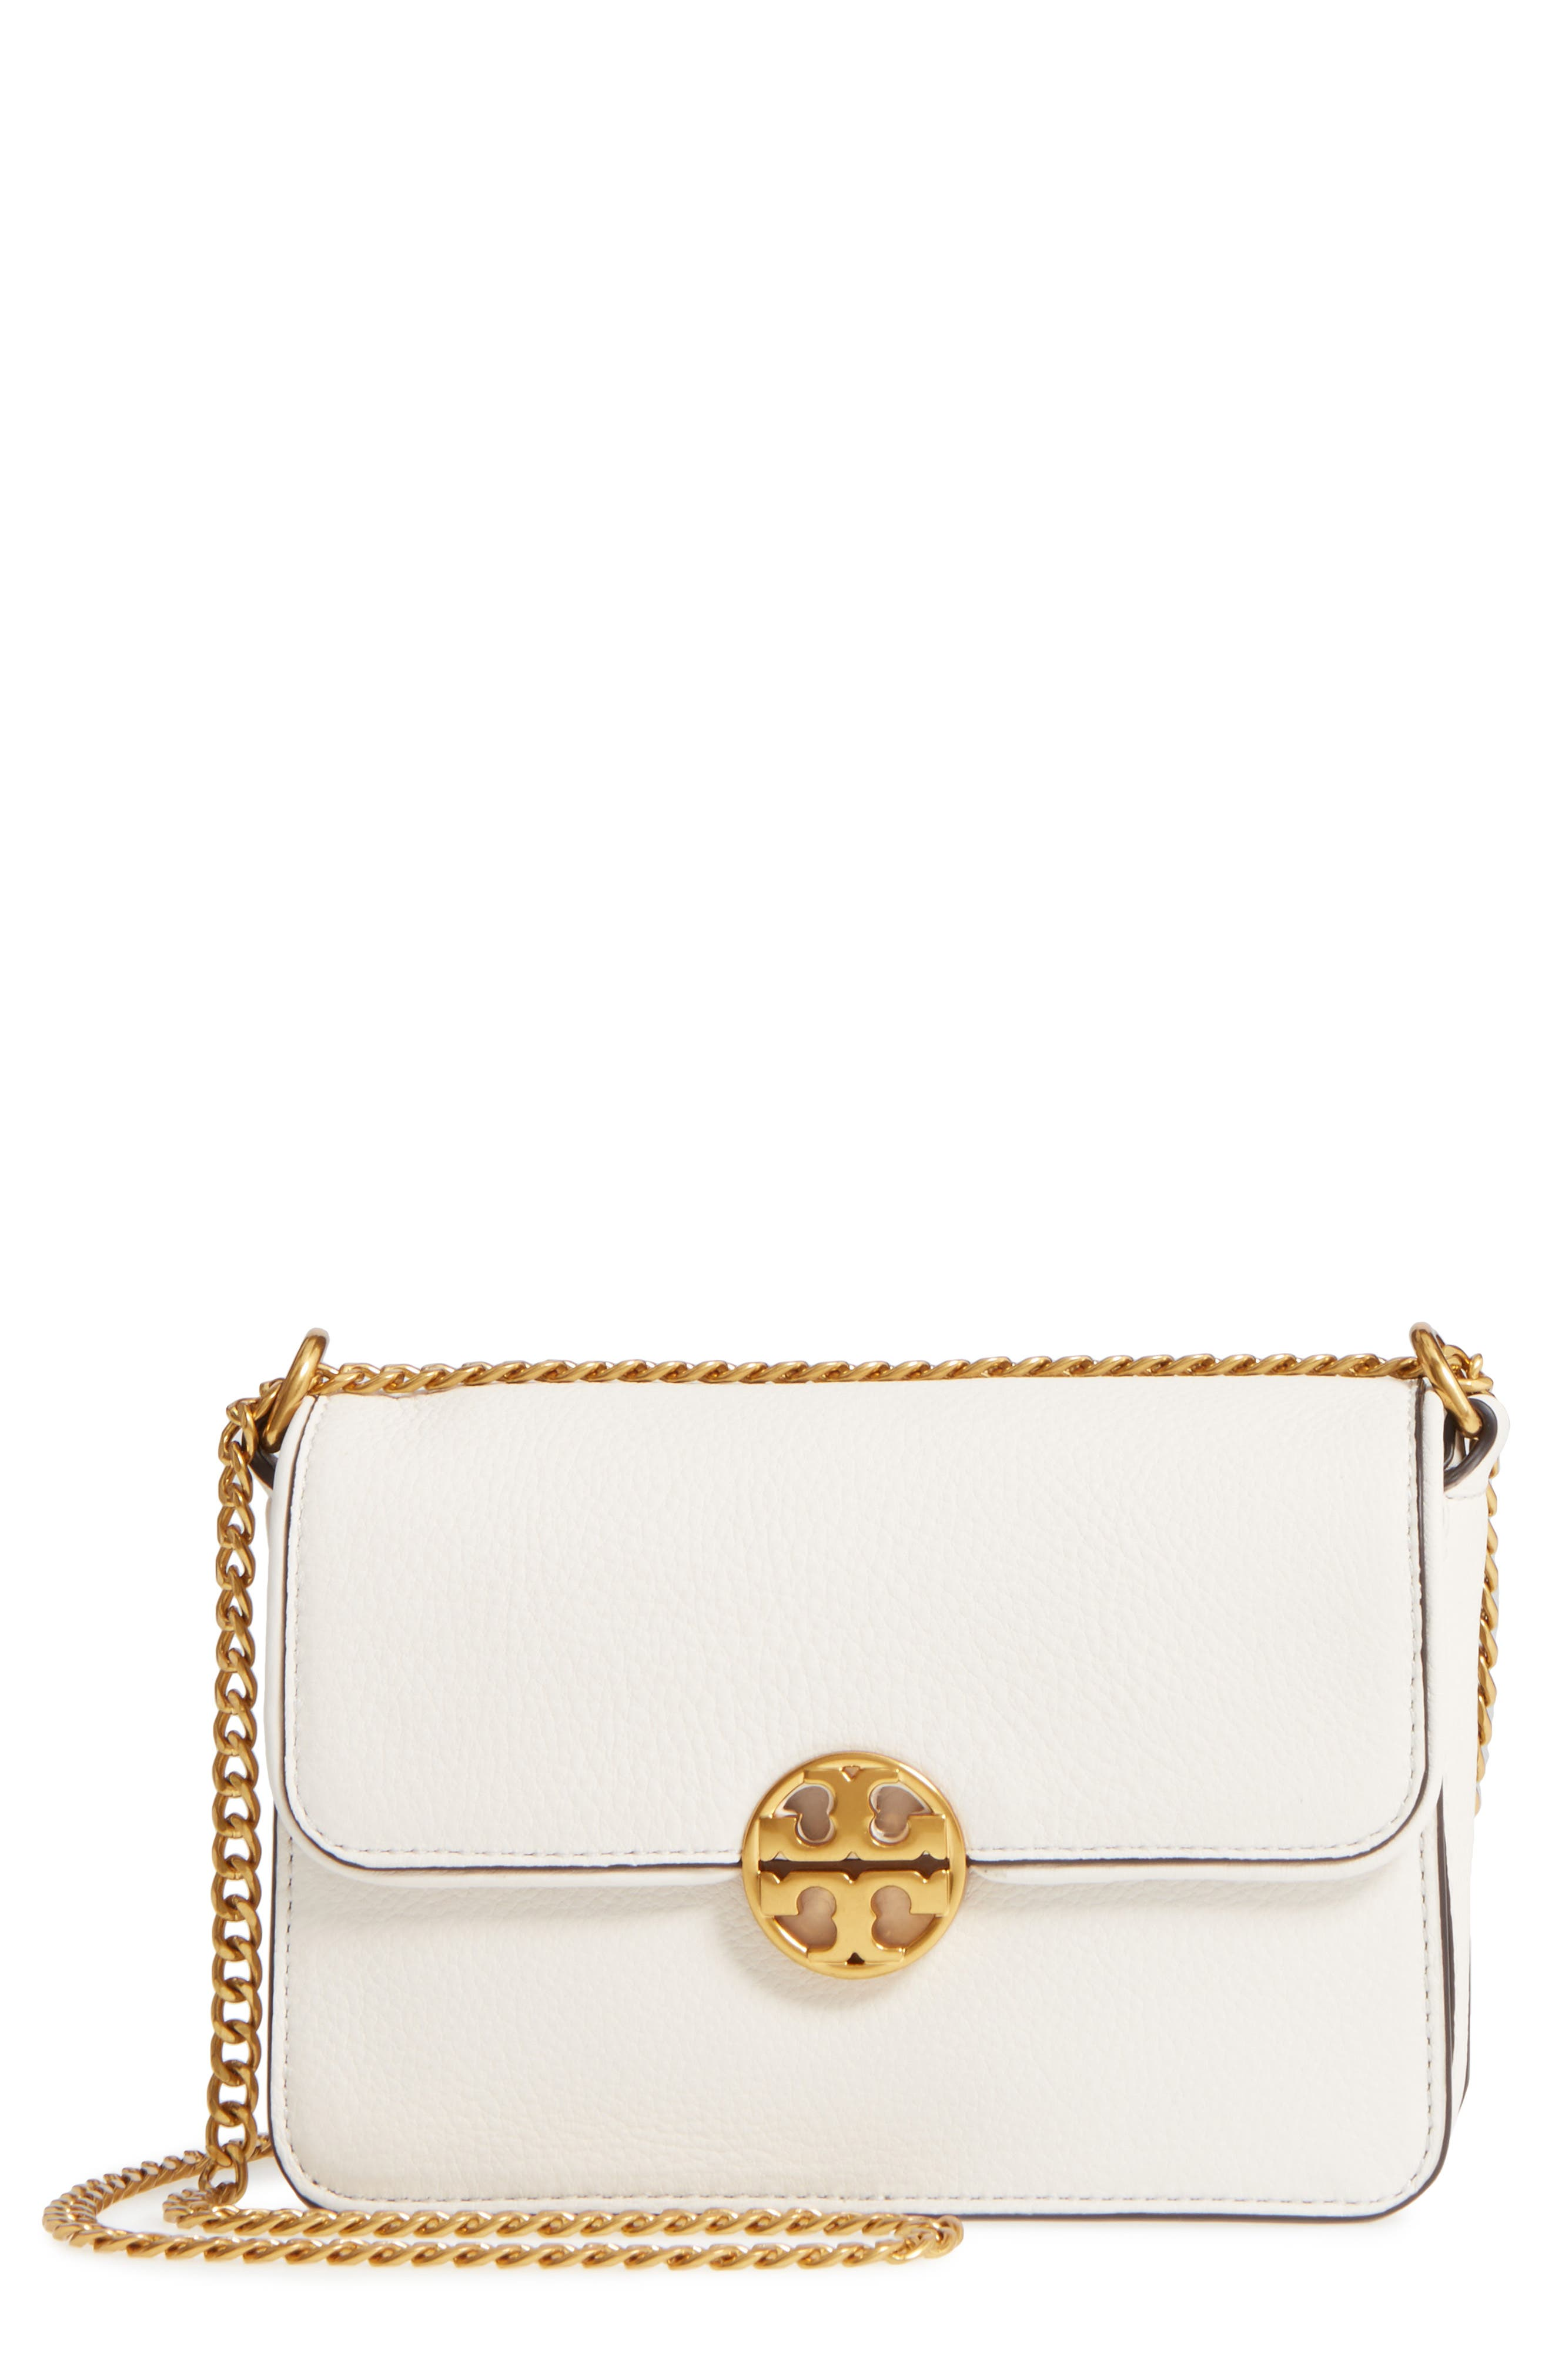 Mini Chelsea Leather Convertible Crossbody Bag,                             Main thumbnail 1, color,                             New Ivory